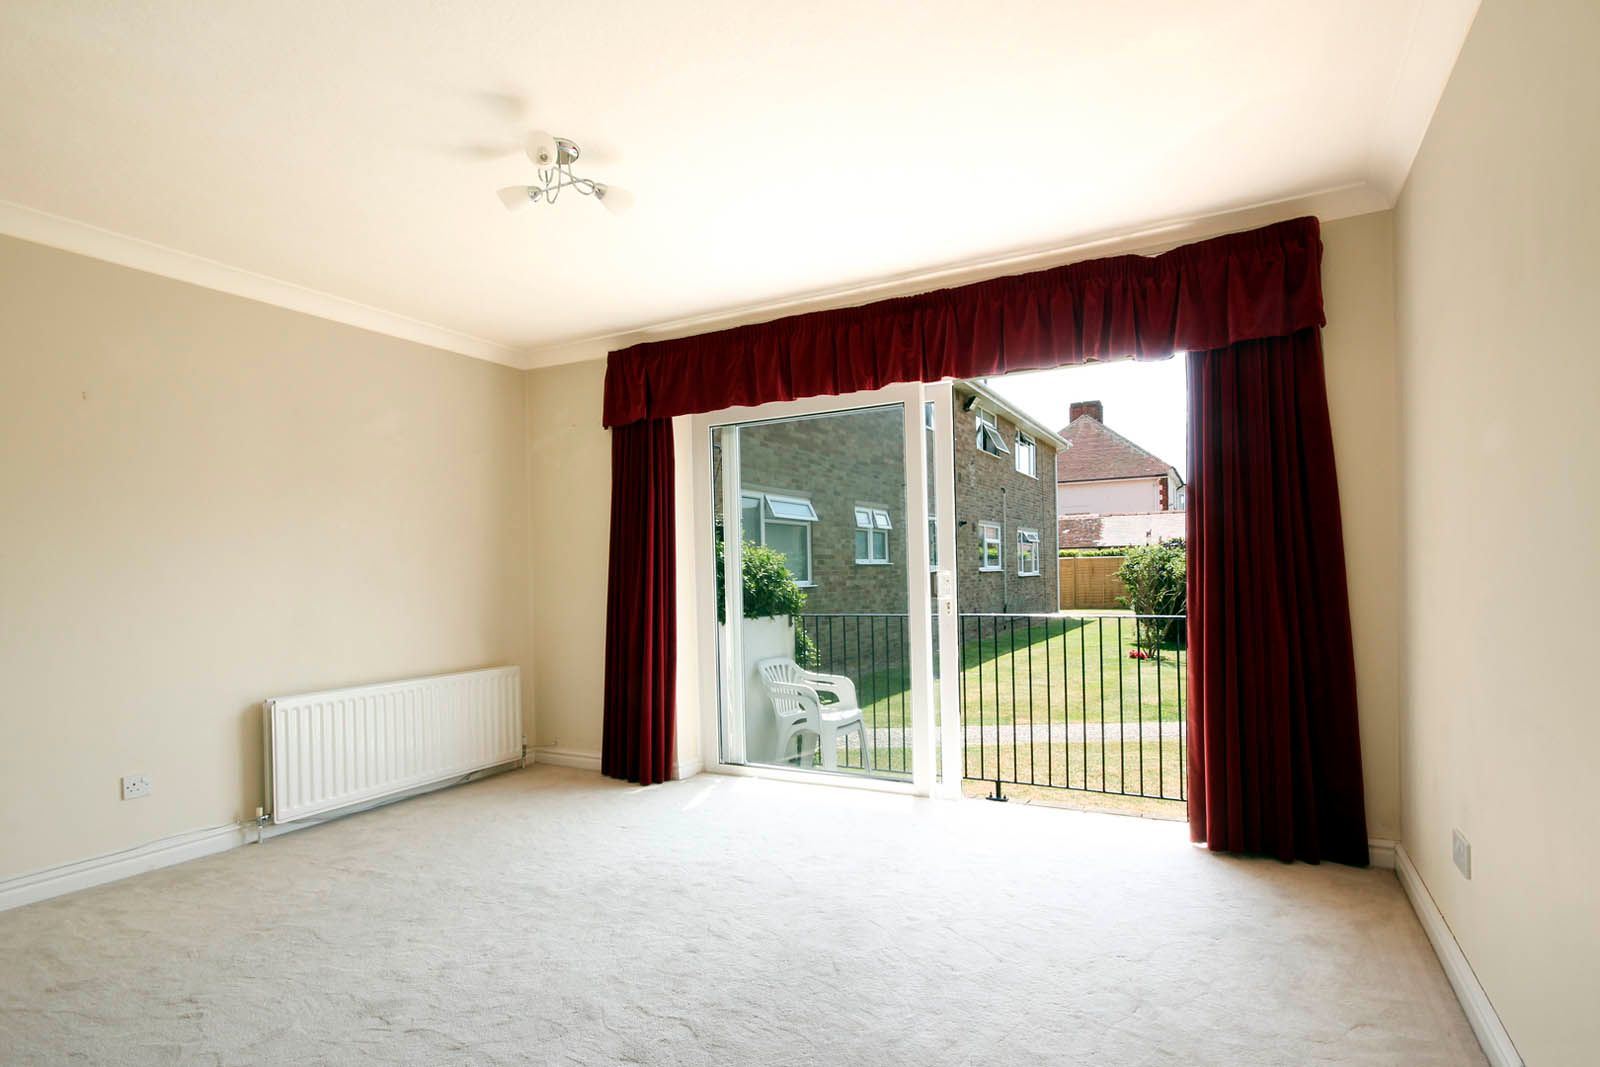 2 bed  for sale in Harsfold Close COMP MAY 2019  - Property Image 4